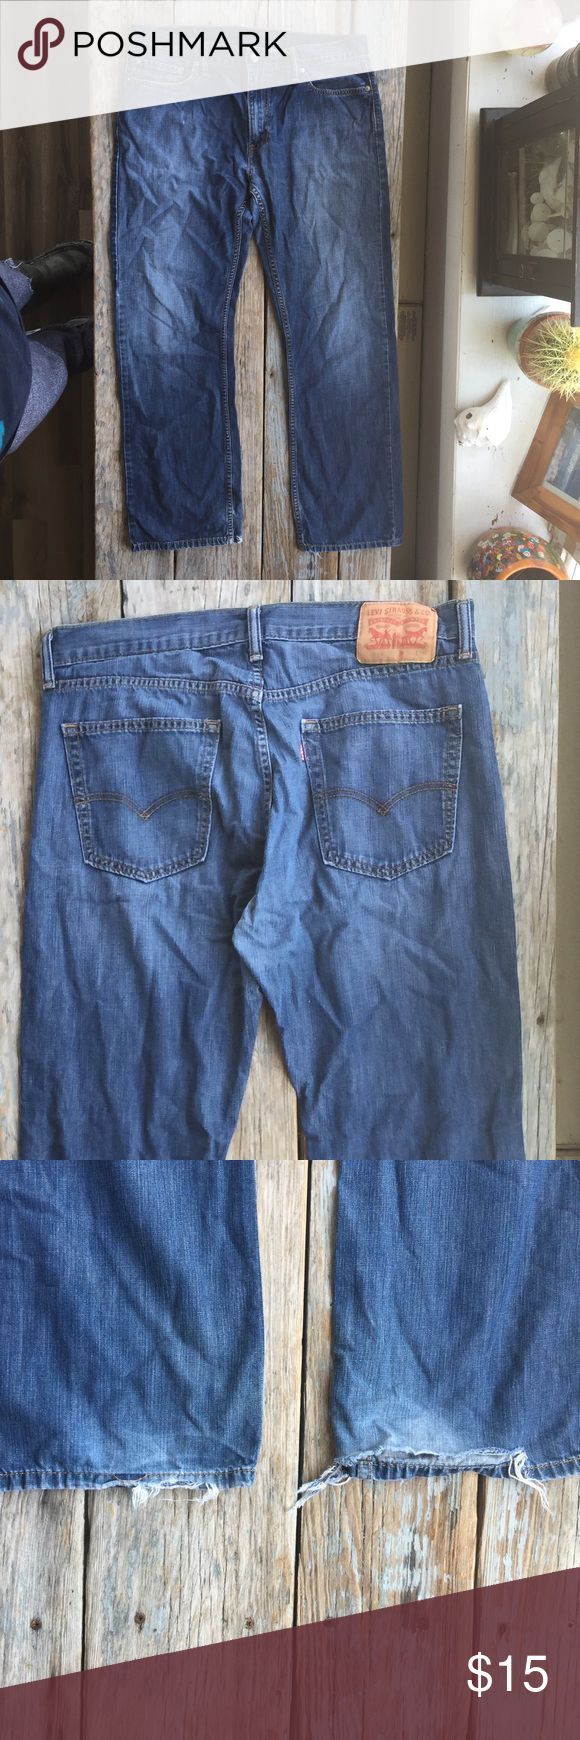 Levi's 514 Jeans These are in great condition except for the hem. Some people actually like this look. I like them over boots. Levi's Jeans Relaxed